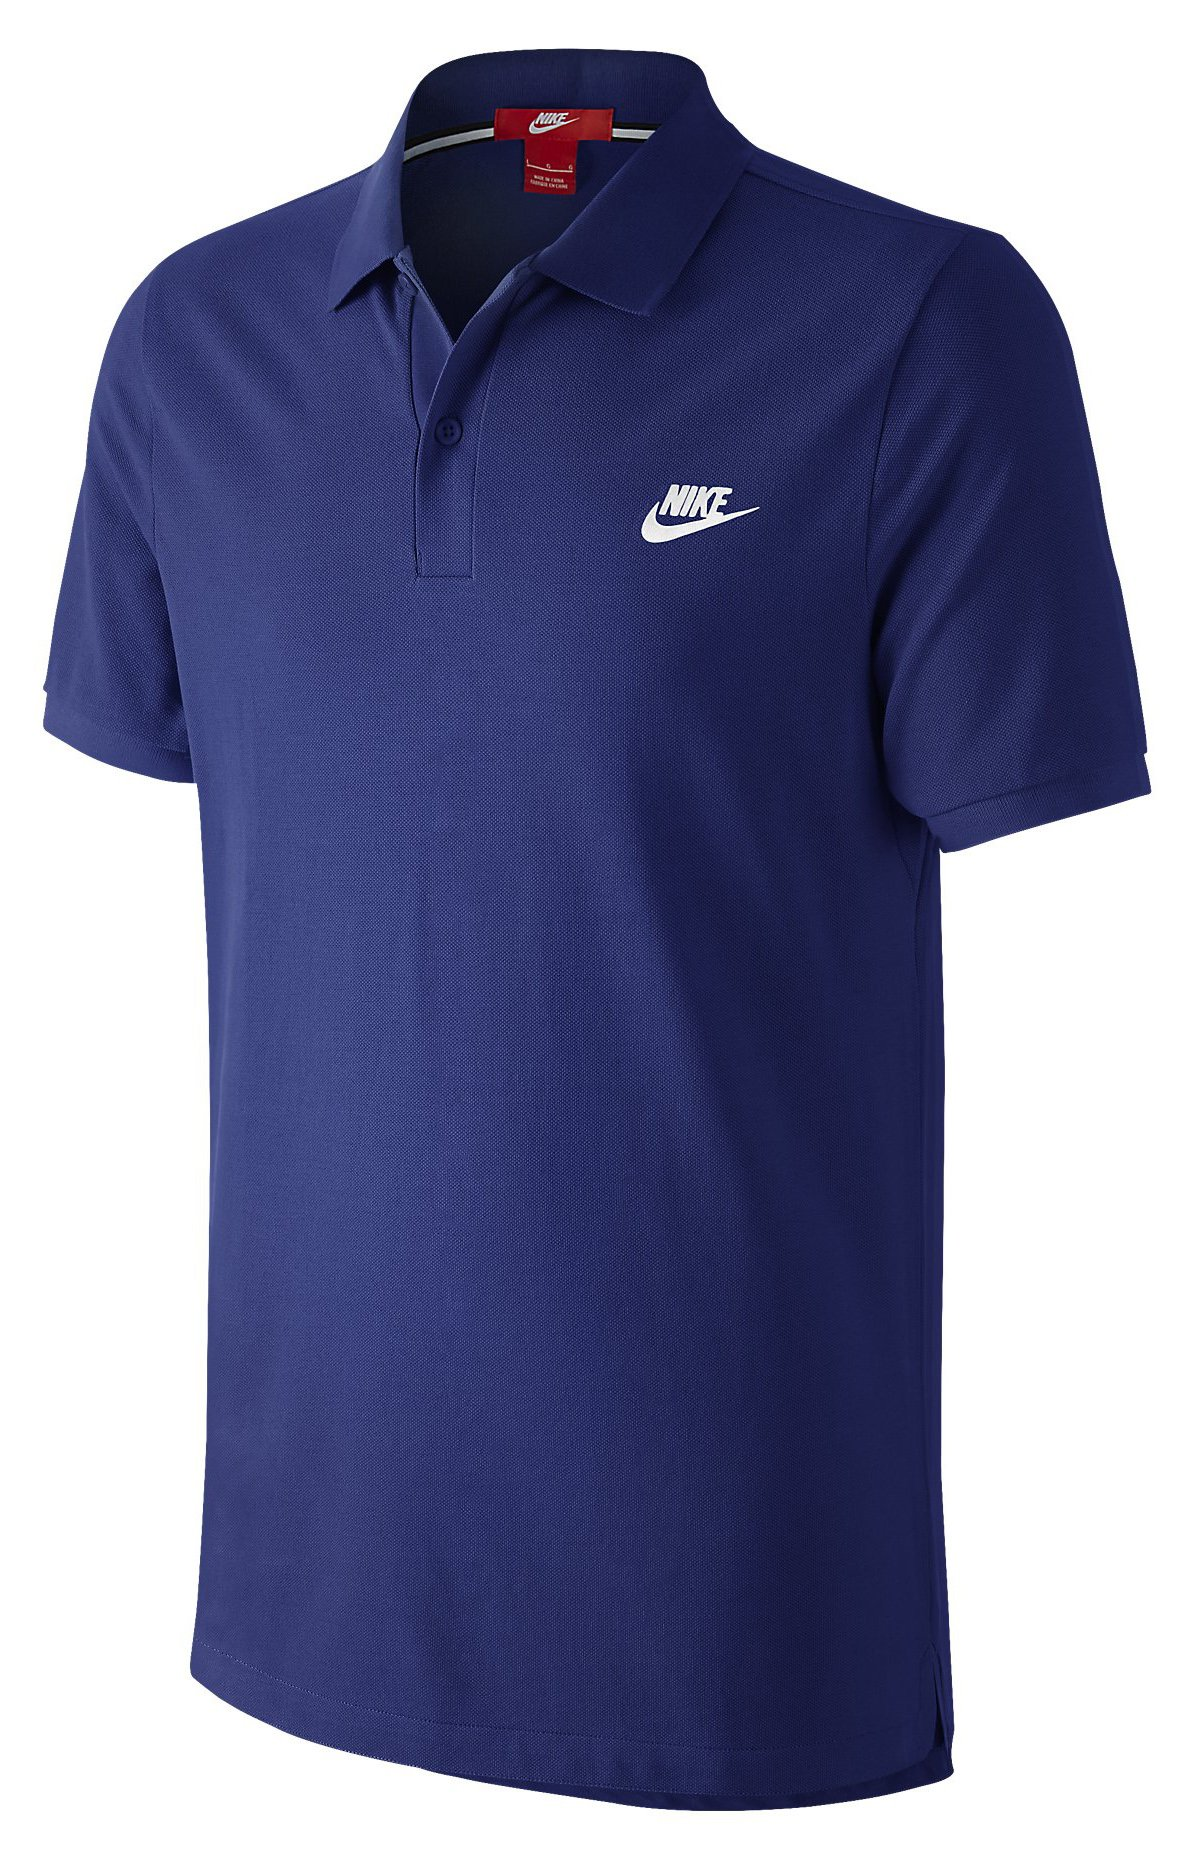 Polokošile Nike Grand Slam Slim